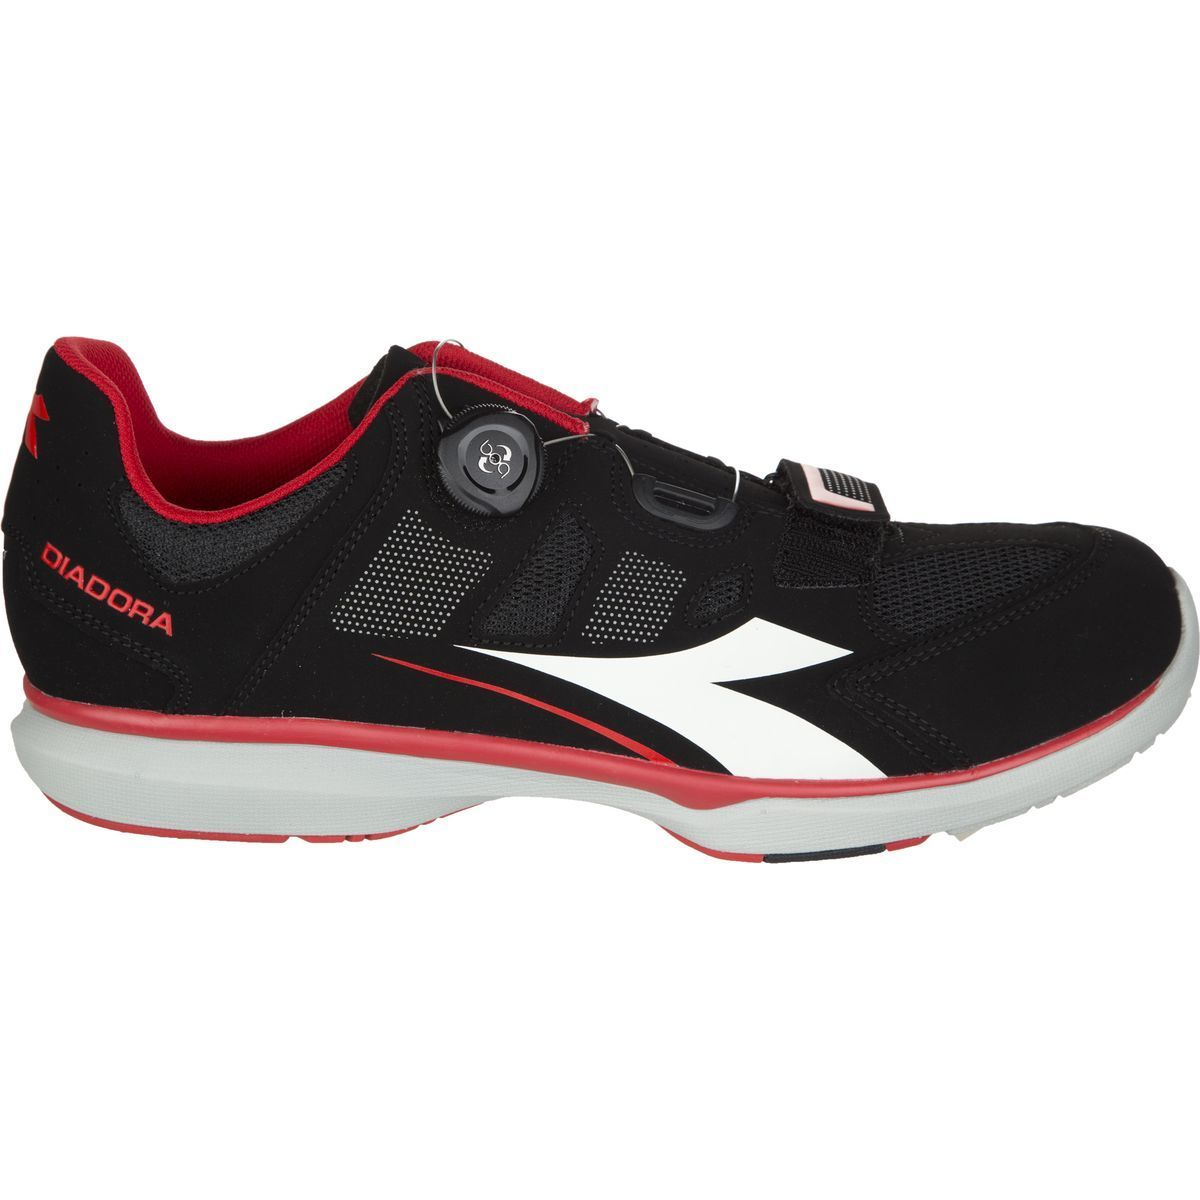 Mens Spinning Gym Shoes